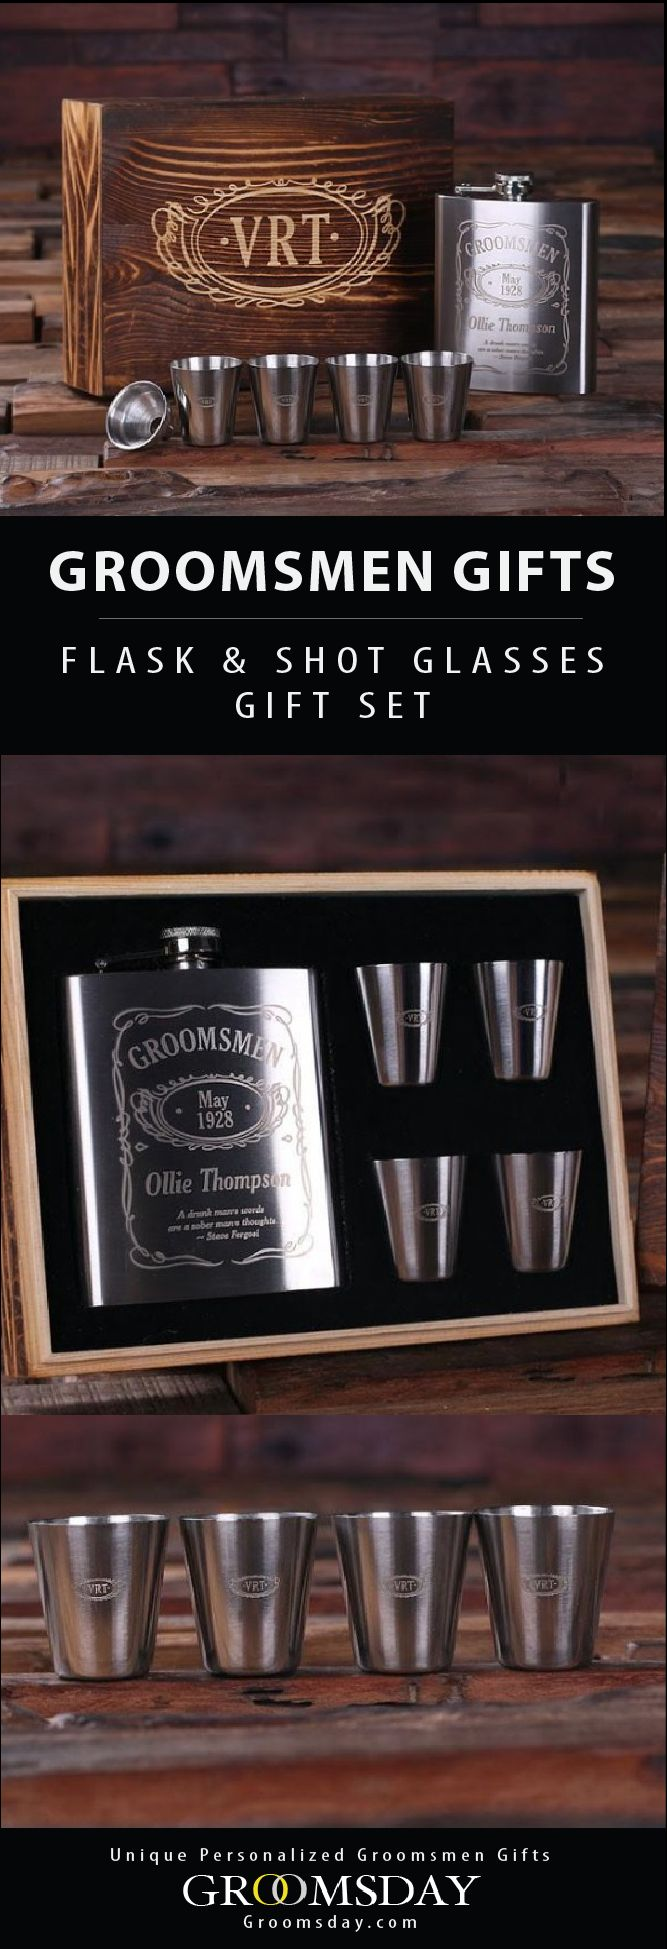 Surprise the deserving groom or groomsman with this personalized engraved flask and shot glass gift set. Comes with 1 whiskey flask, 4 steel shooters, in an engraved wooden box. Check out our huge selection of Groomsmen Gifts, Best Man Gifts, Groom accessories, Gifts for Men, Birthday Gifts for Him, Father of the Bride Gifts, Father's Day Gifts, Anniversary Gifts, Monogrammed Gifts, Valentines Gifts, Sports Gifts & More! Share & Repin! Only from Groomsday || Groomsday.com #flask #hipflask…